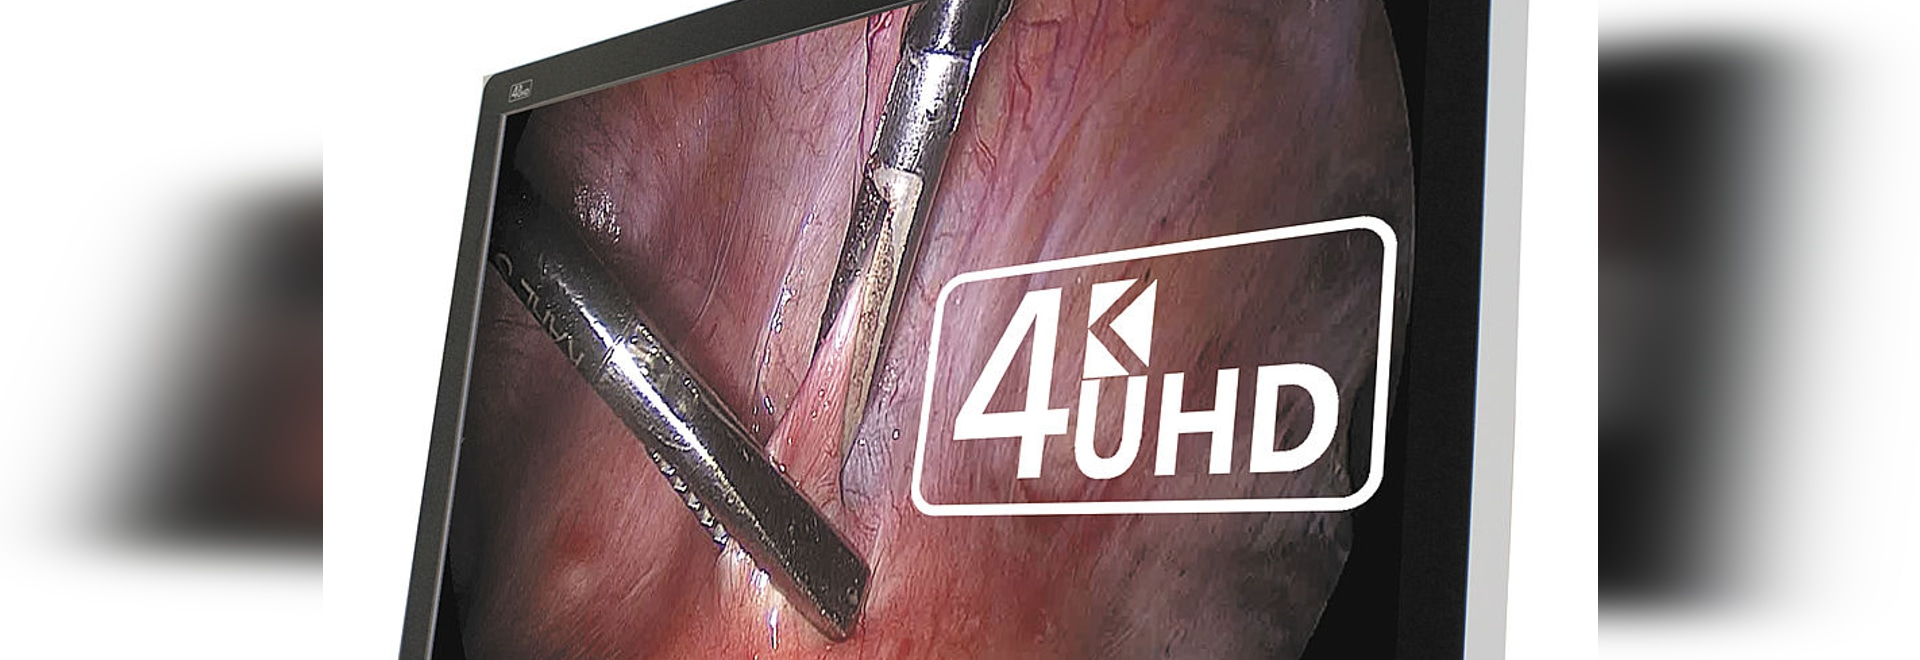 New 4K HD Every Pixel Breathes, Exposing Its Phenomenal Pixel-Perfect Details